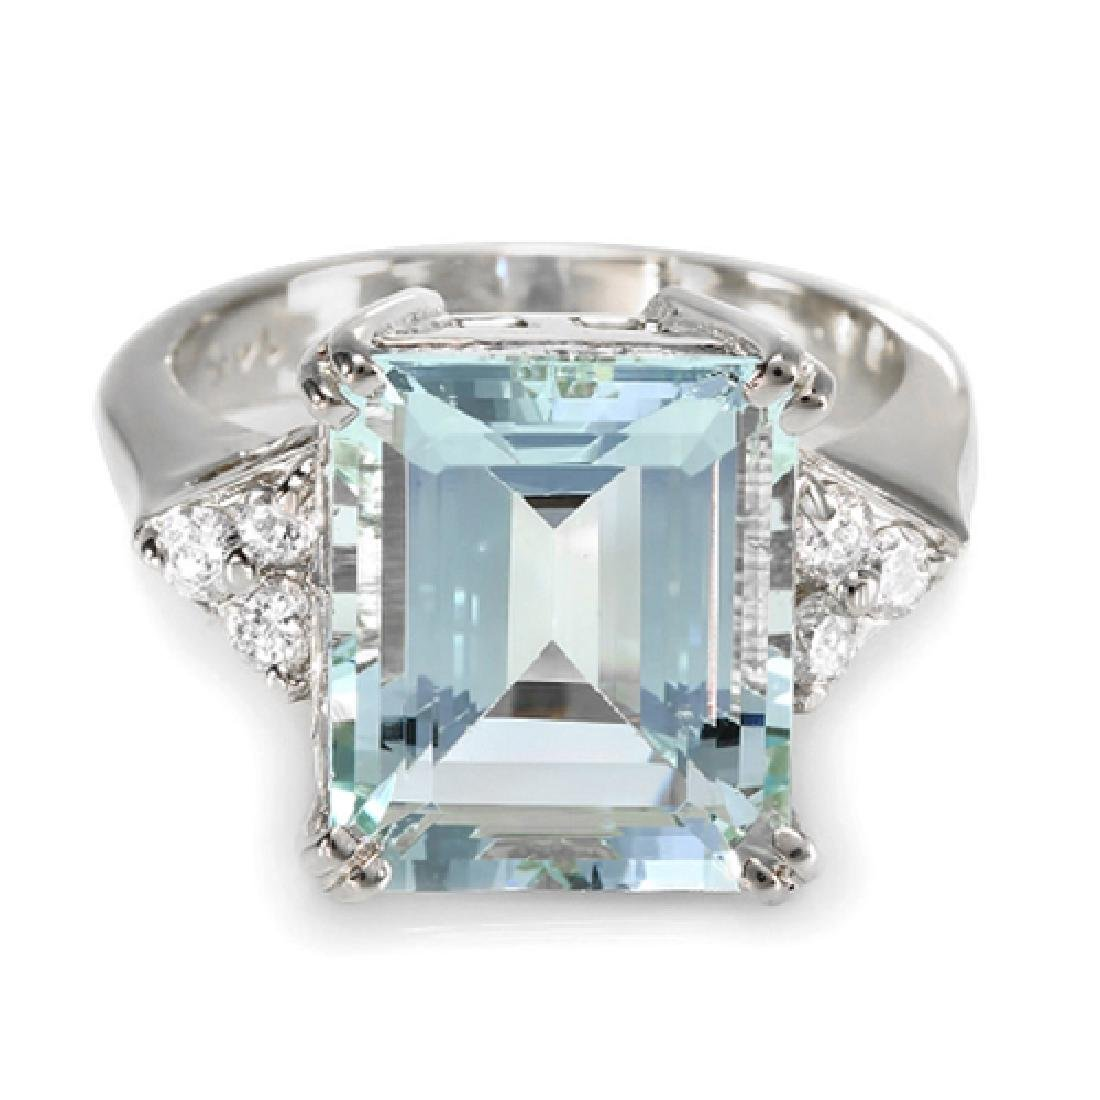 5.72 Carat Natural Aquamarine 18K Solid White Gold